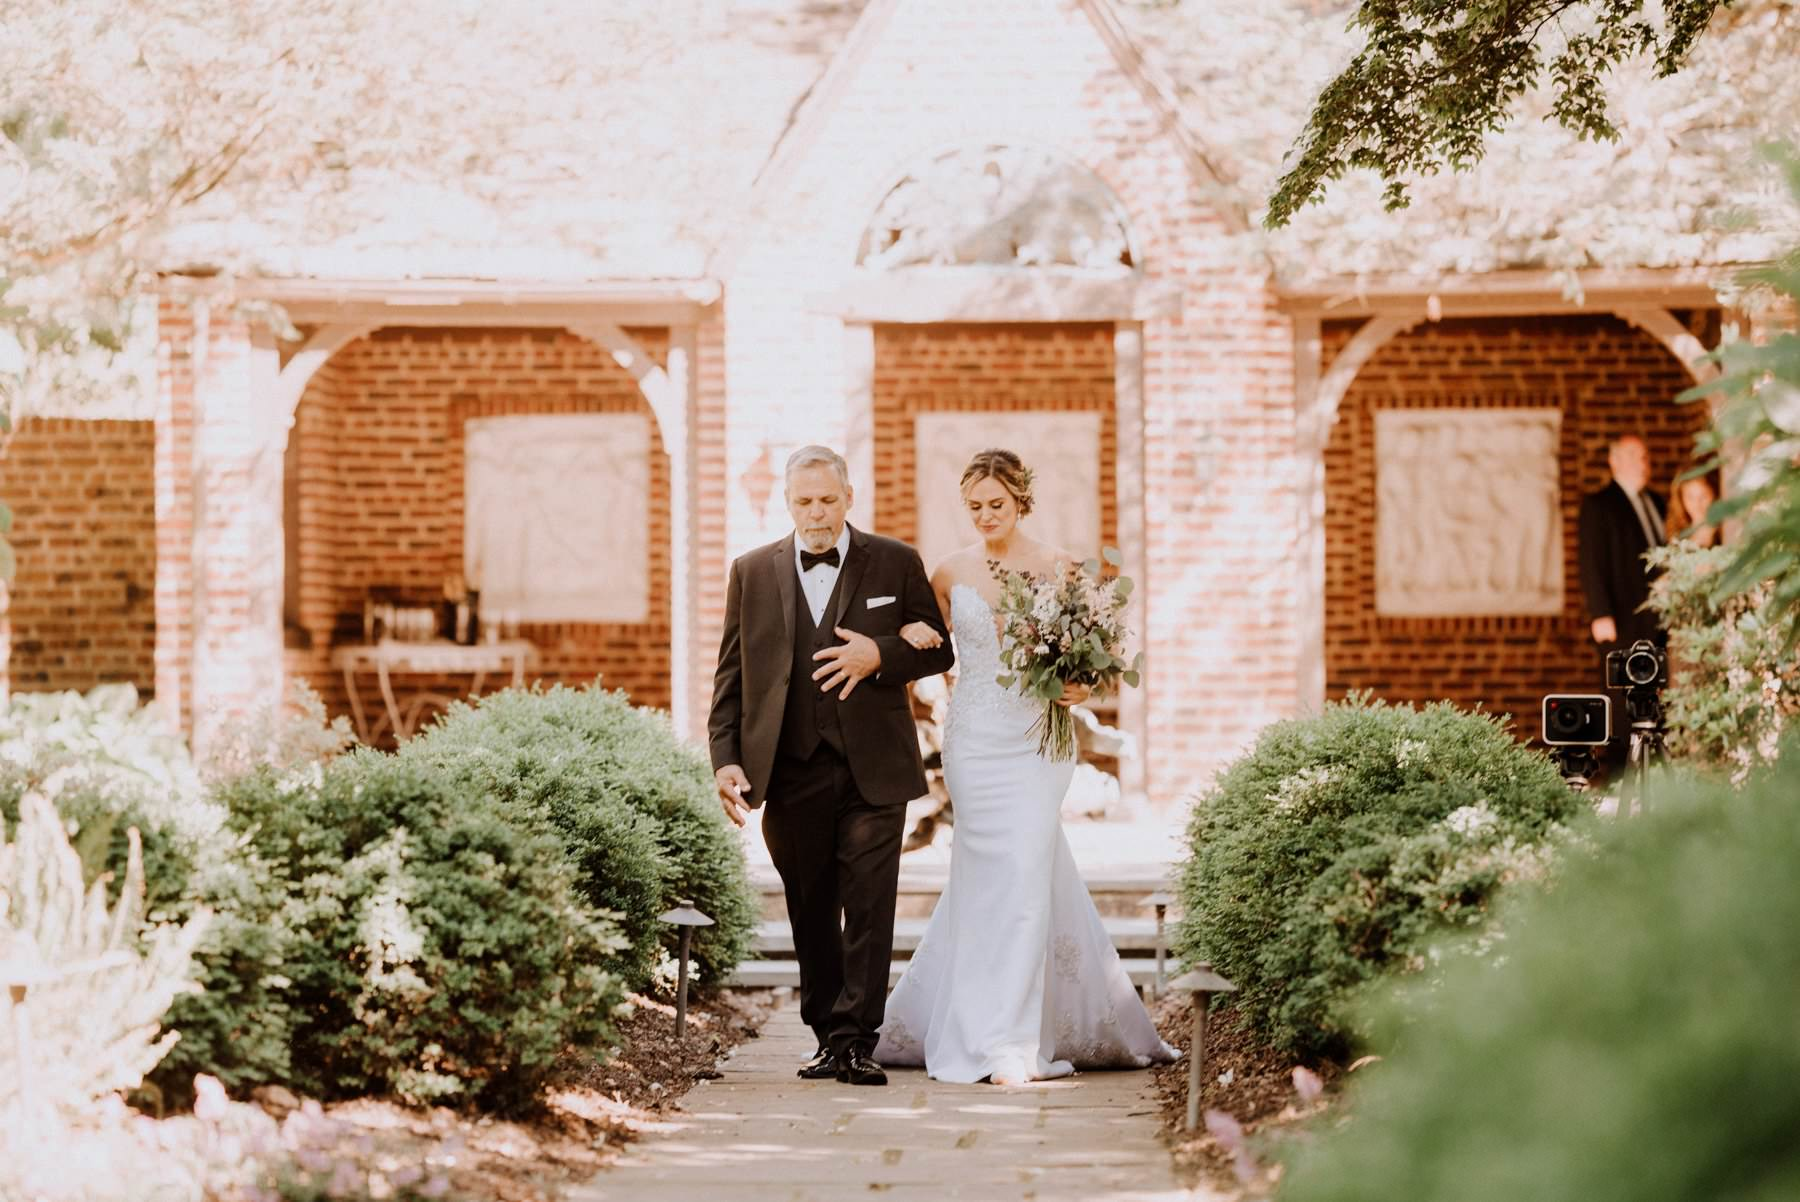 greenville-country-club-wedding-photographer-43.jpg